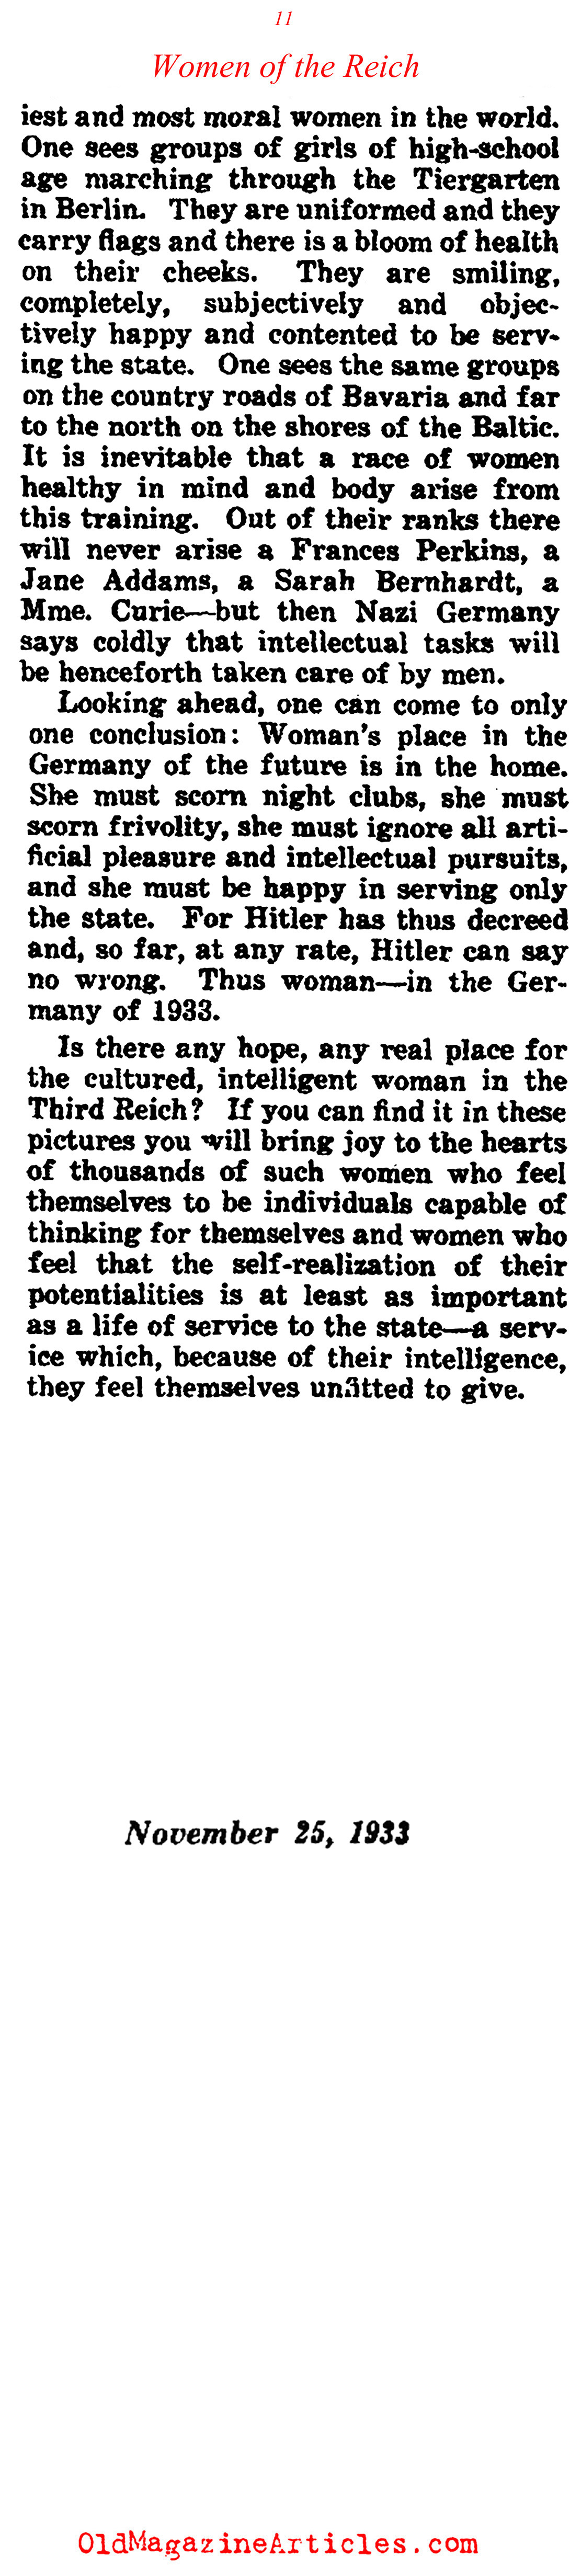 A Woman's Place Within the Third Reich (Collier's Magazine, 1933)